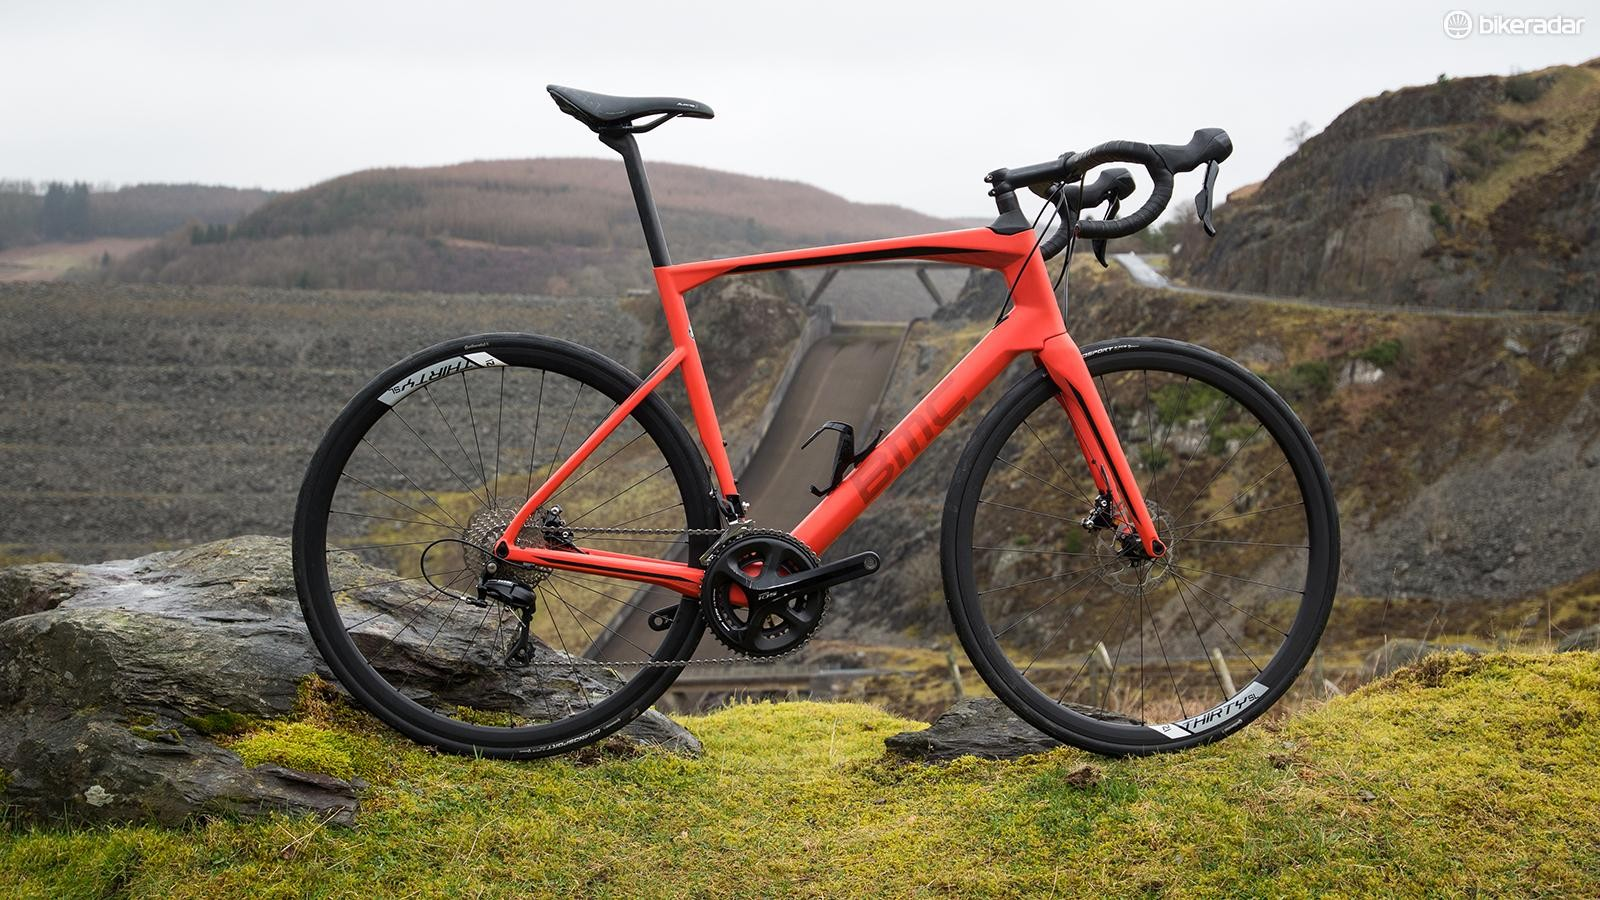 The BMC Roadmachine 02 105 blends race and endurance traits for an amazing ride